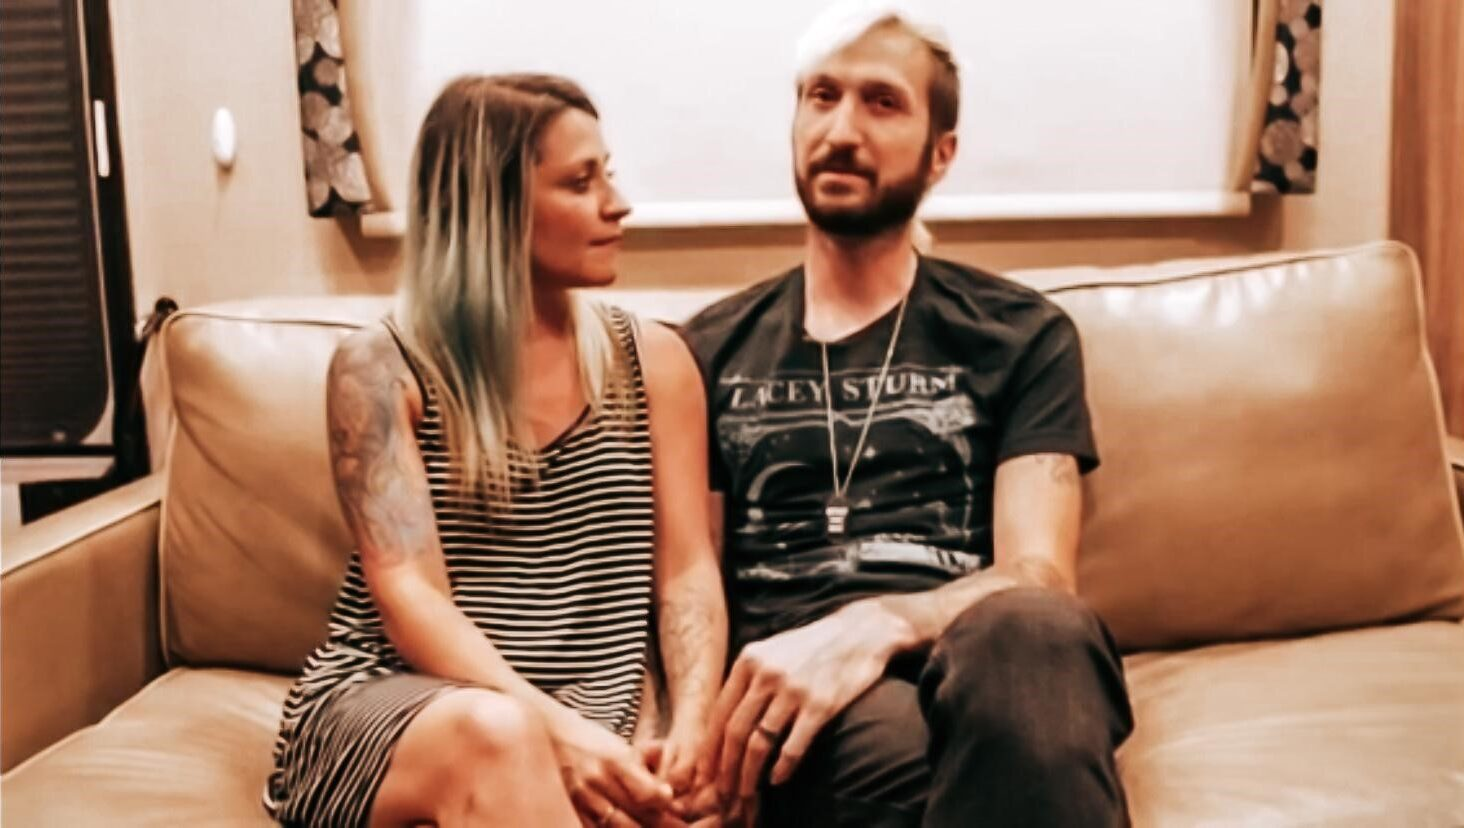 Lacey & Josh Sturm open up about their Mental Health in new video